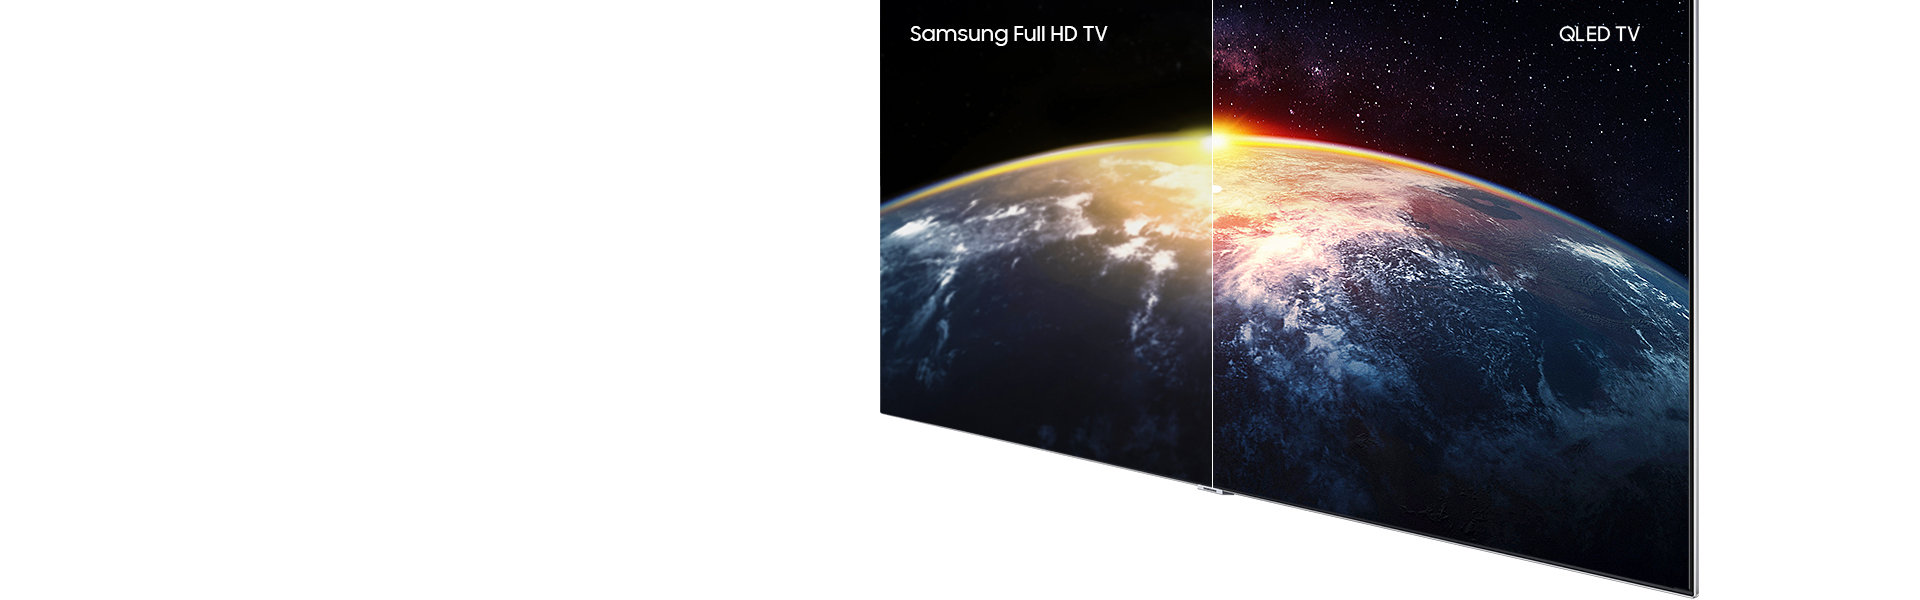 Images of the Earth that the sunlight is lit on in order to to explain Q Contrast. Samsung QLED TV's image on the right appears clearer than that of other TV's on the left.  With Samsung QLED TV, you can see the details on surface of the Earth and the stars in universe.